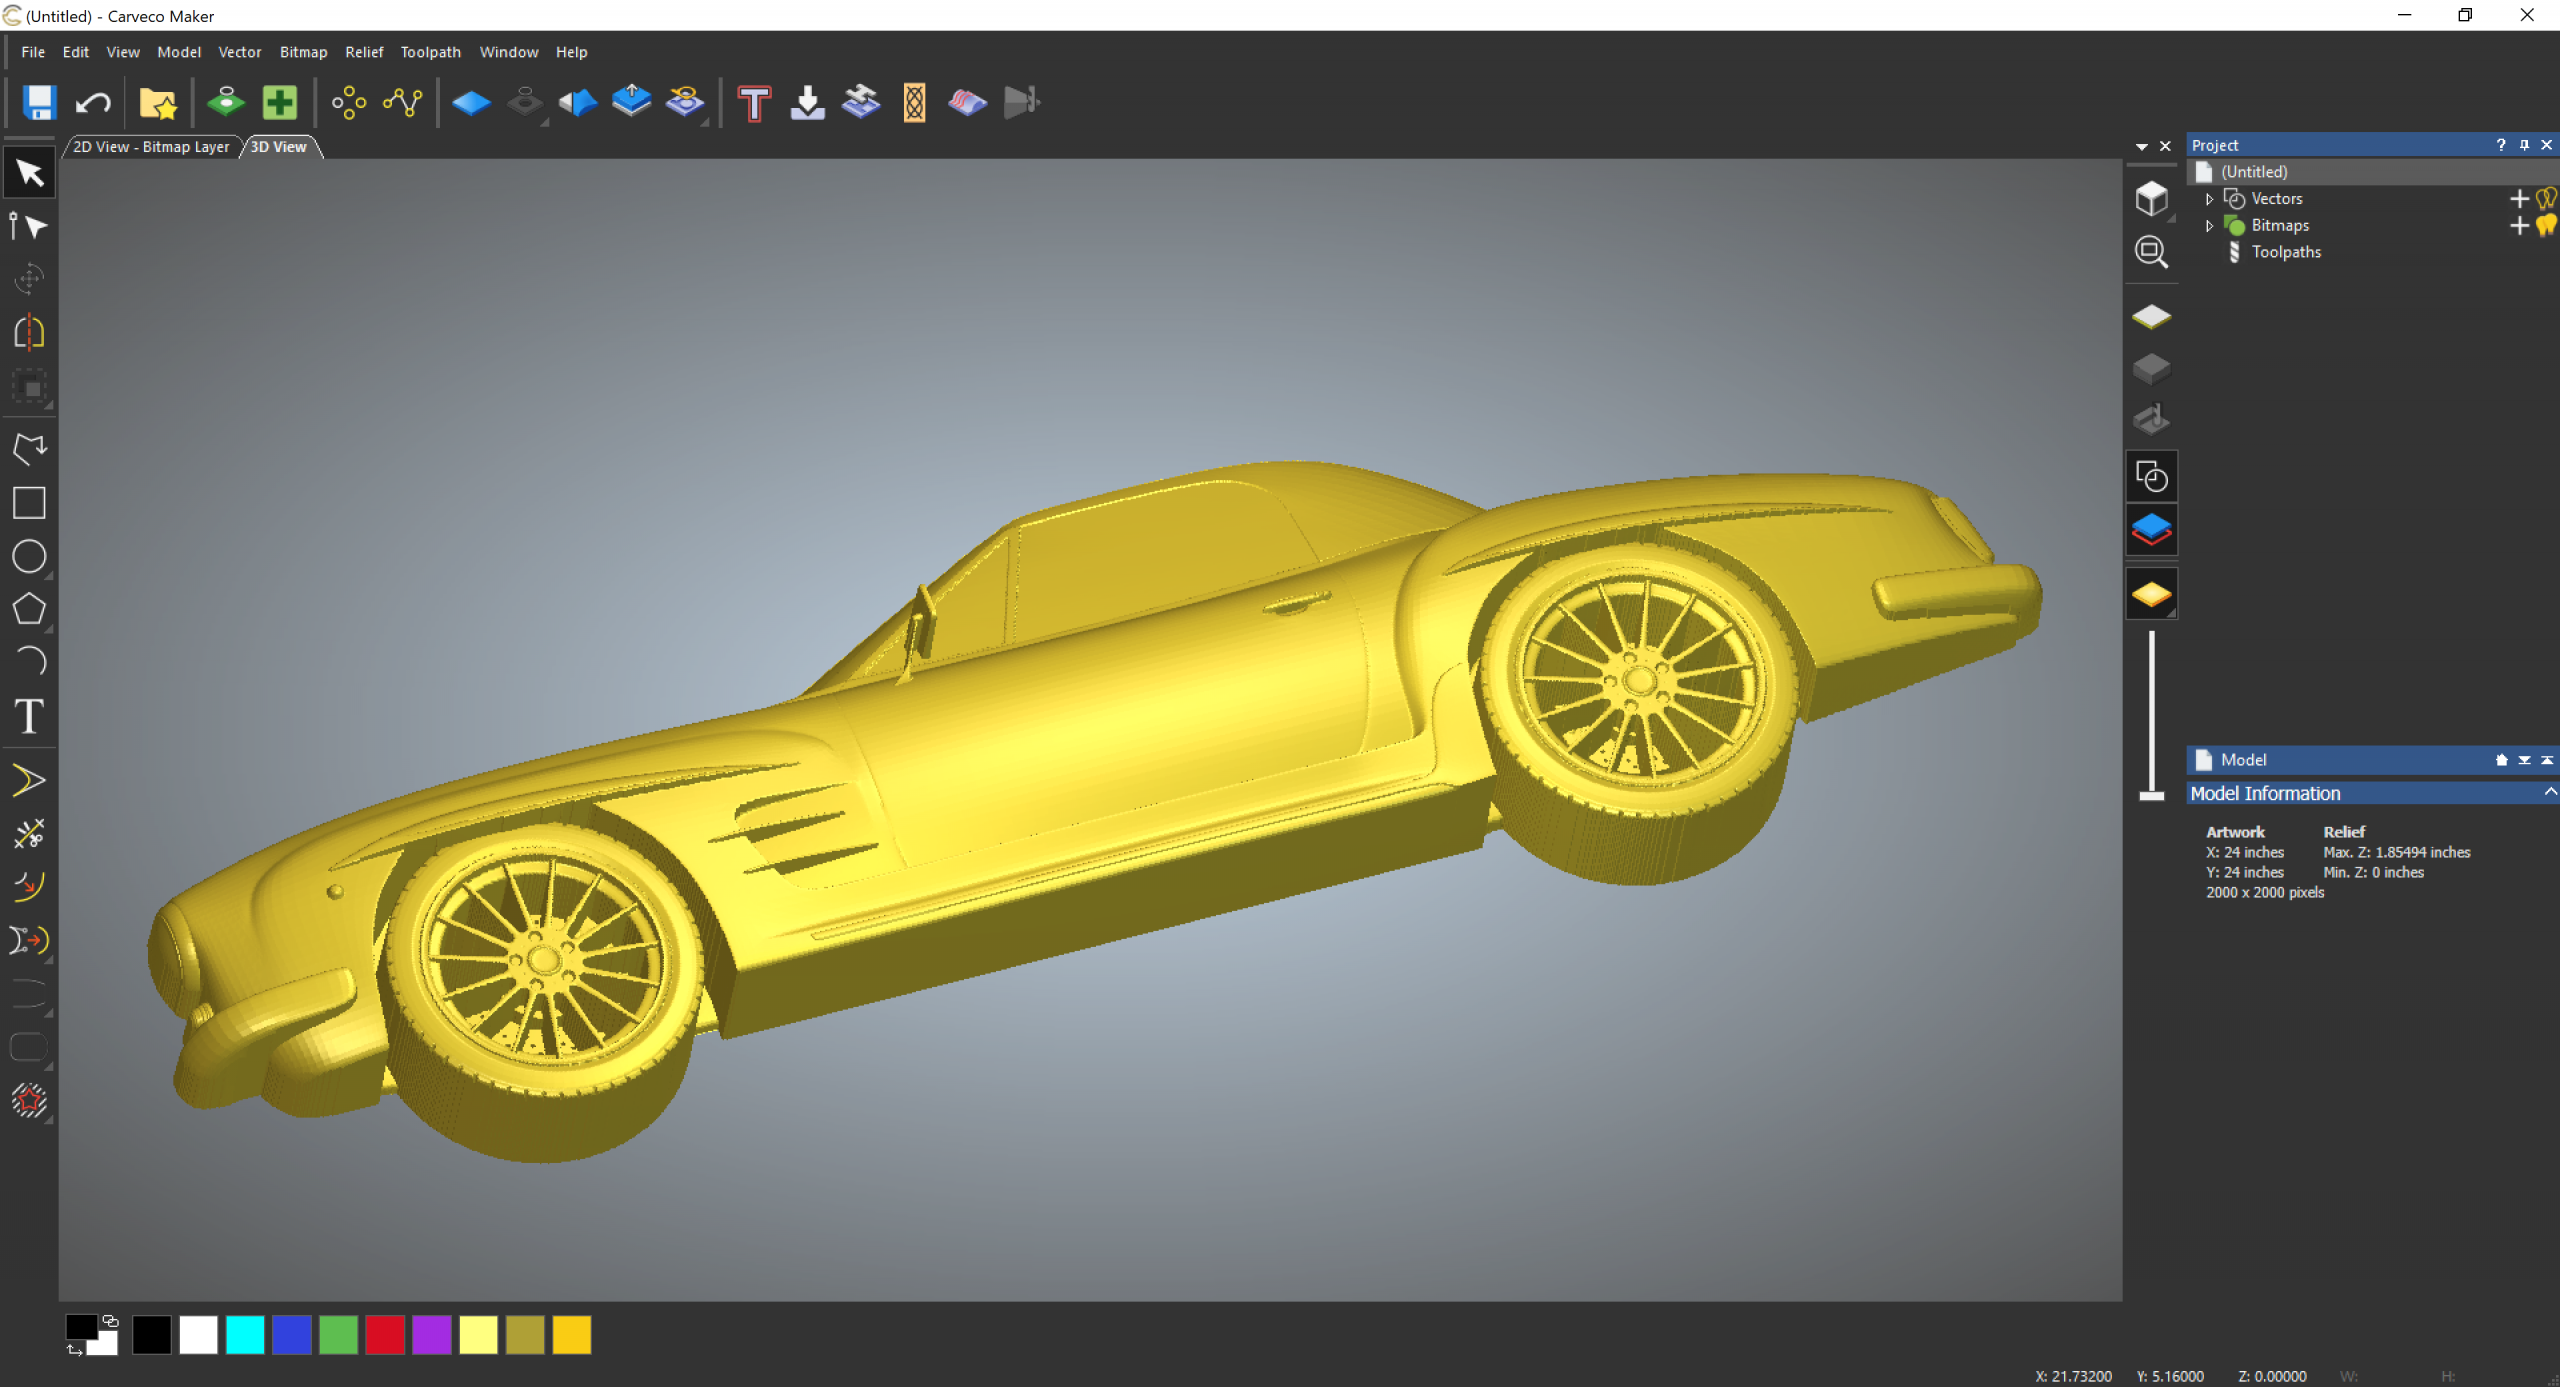 Flatten 3D models with the embossing tool